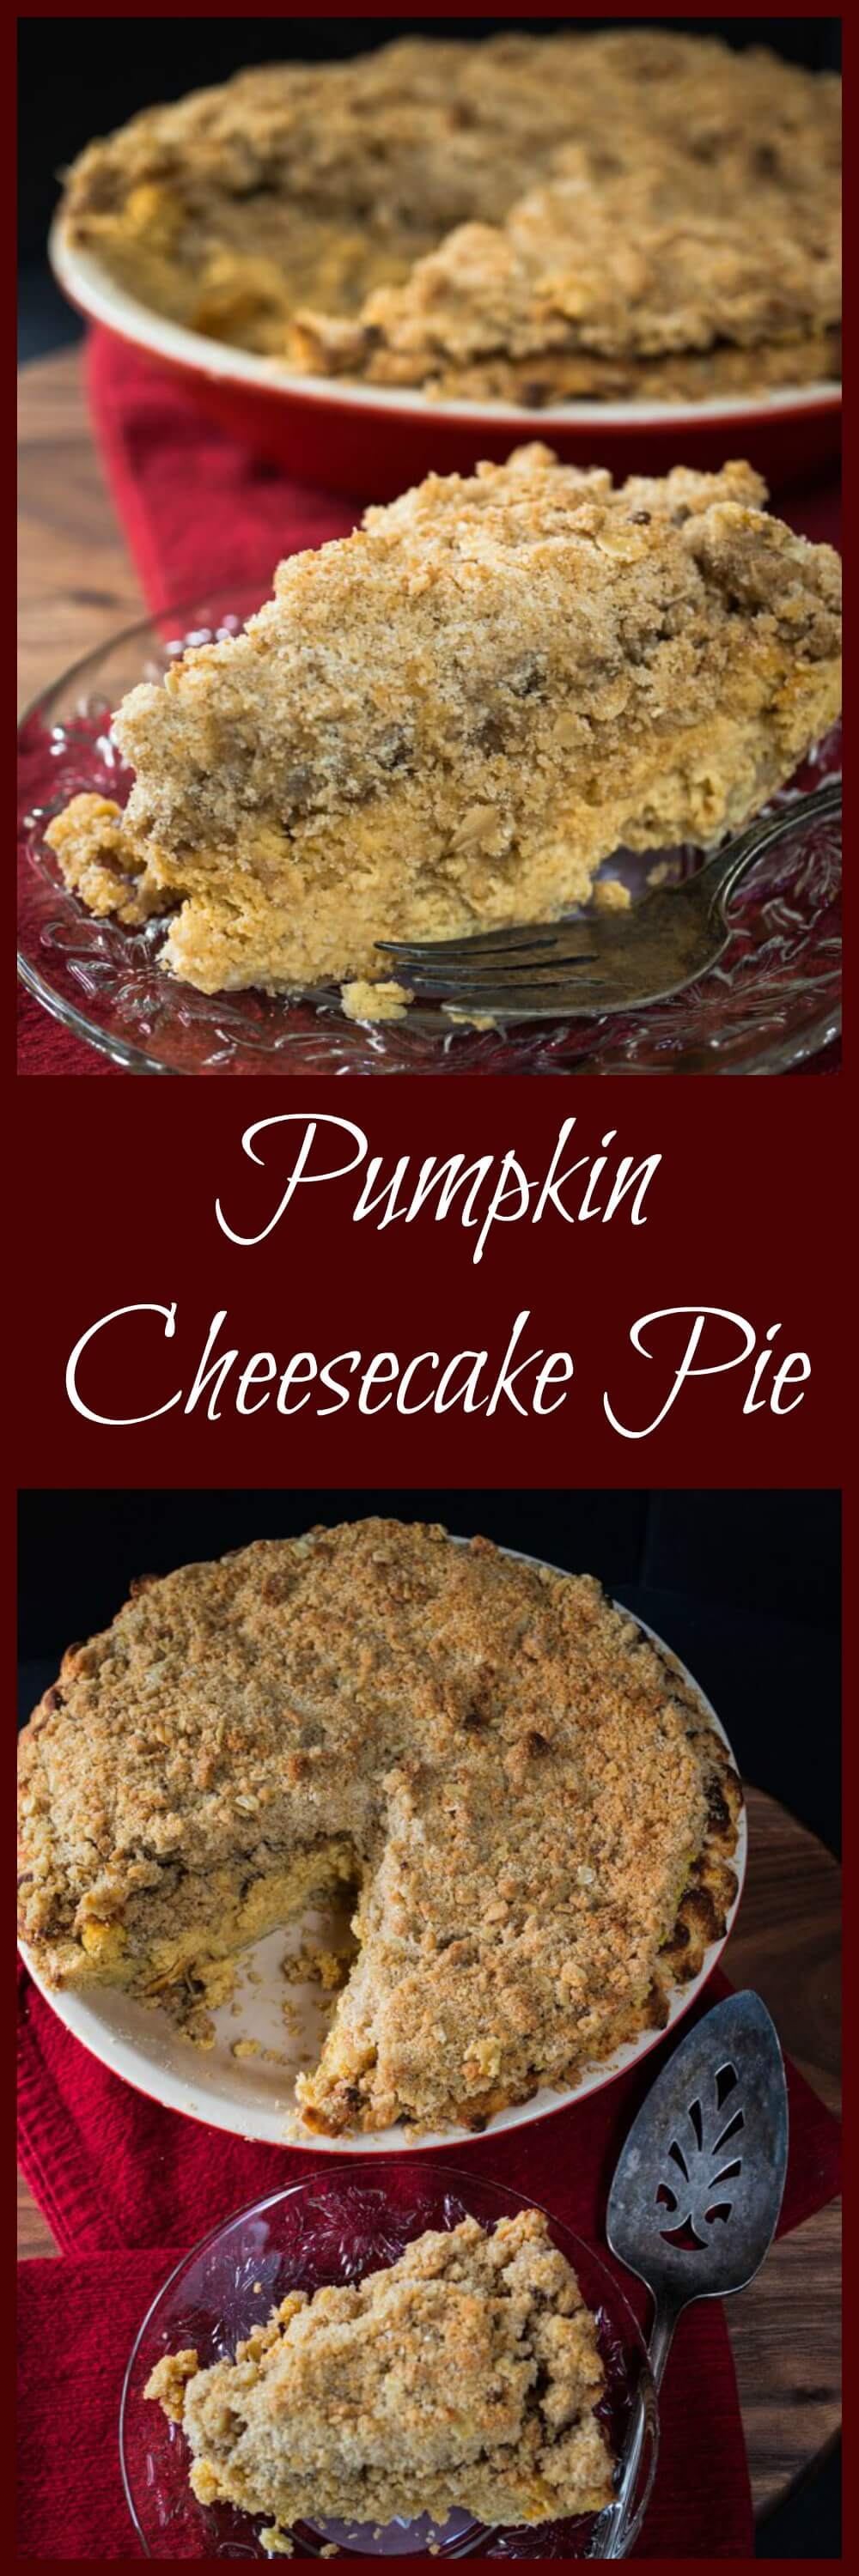 "Two photo collage for Pinterest. The top photo shows a slice of pumpkin cheesecake pie on a glass plate with a fork sitting next to it over a red napkin. The sliced pie sits in the background. The bottom photo is a top-down photo of the same photo. A banner runs through the center with the title ""Pumpkin Cheesecake Pie\""."